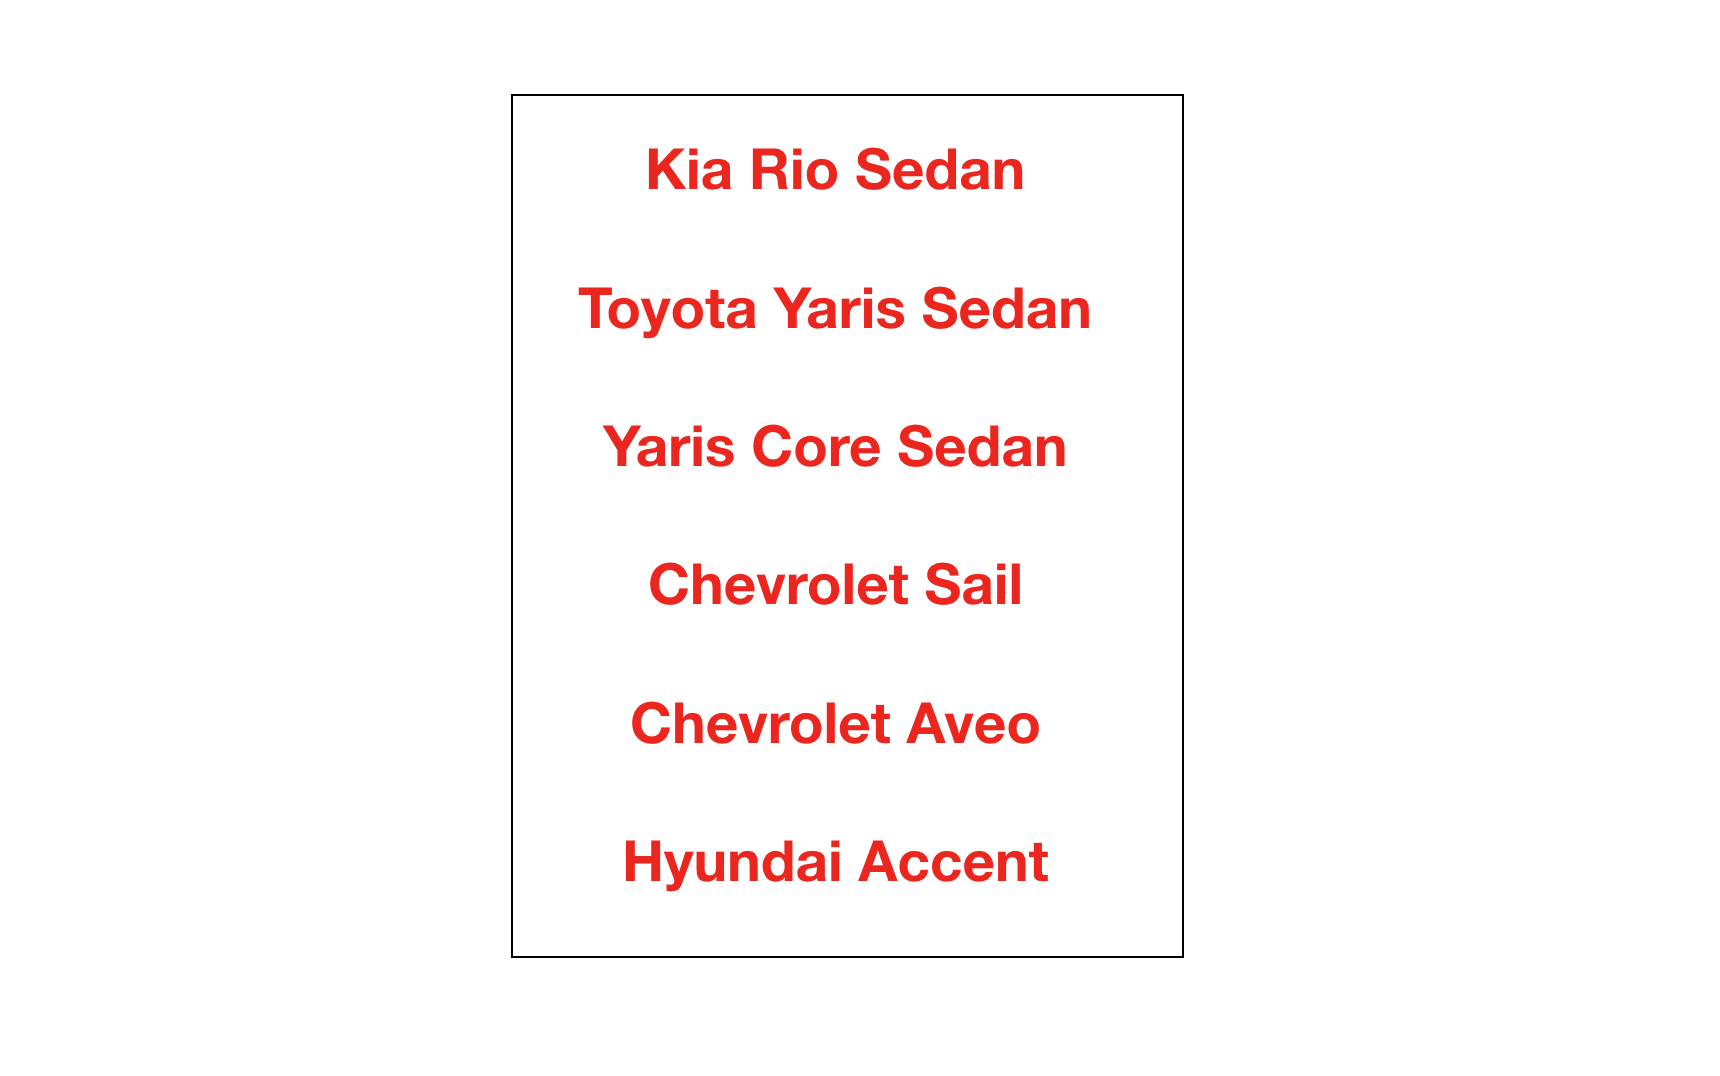 - This were the 6 car models from different brand that I had to research and analyze.